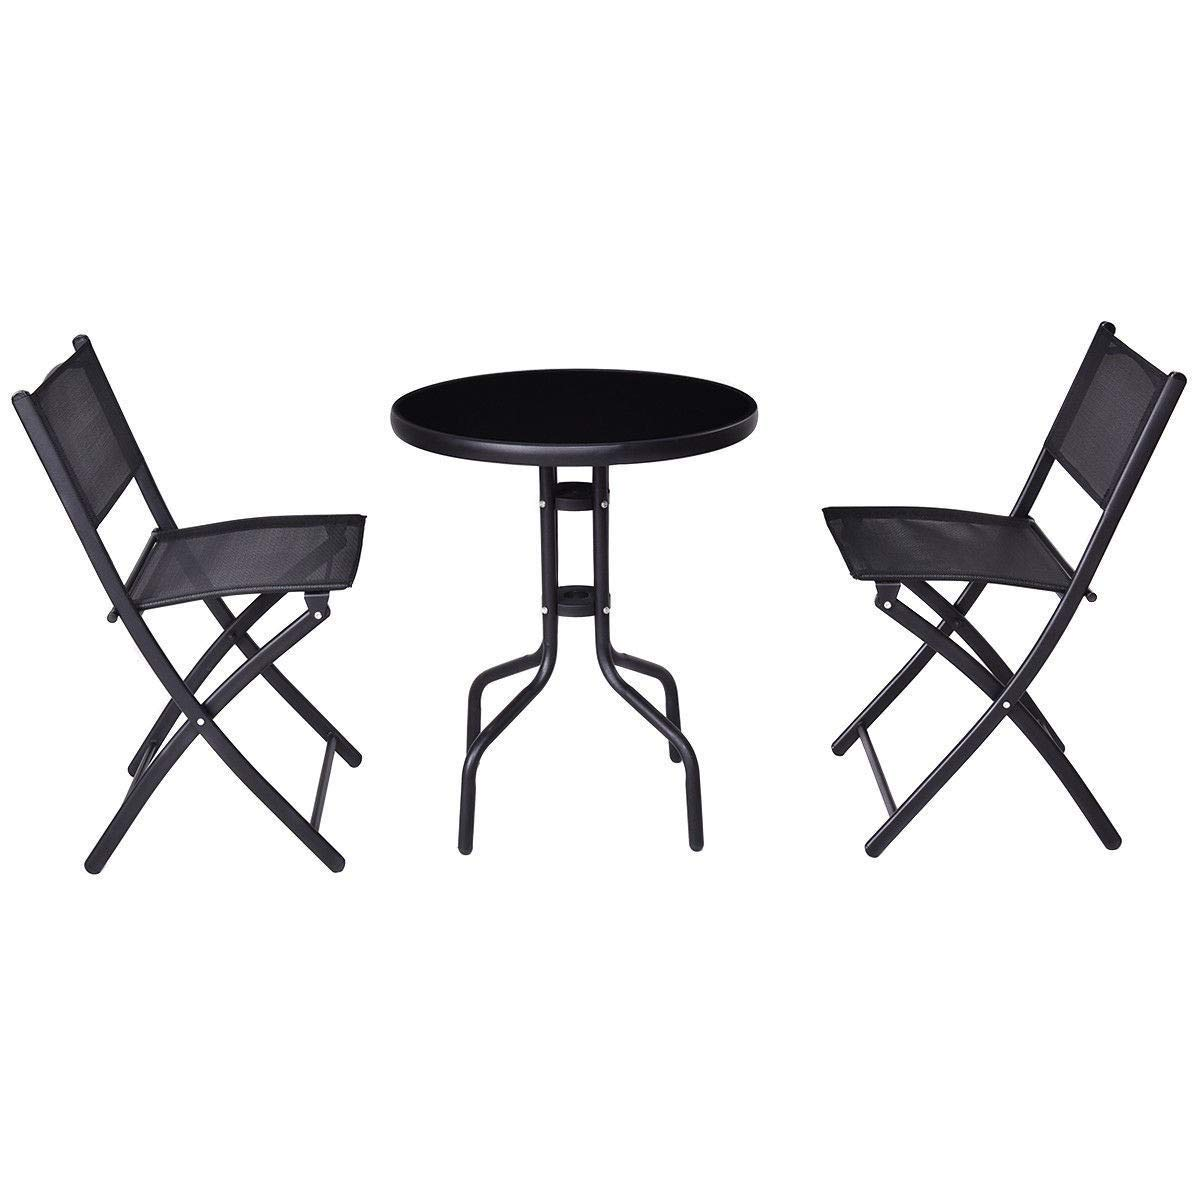 MD Group 3 pcs Outdoor Folding Bistro Table Chairs Set